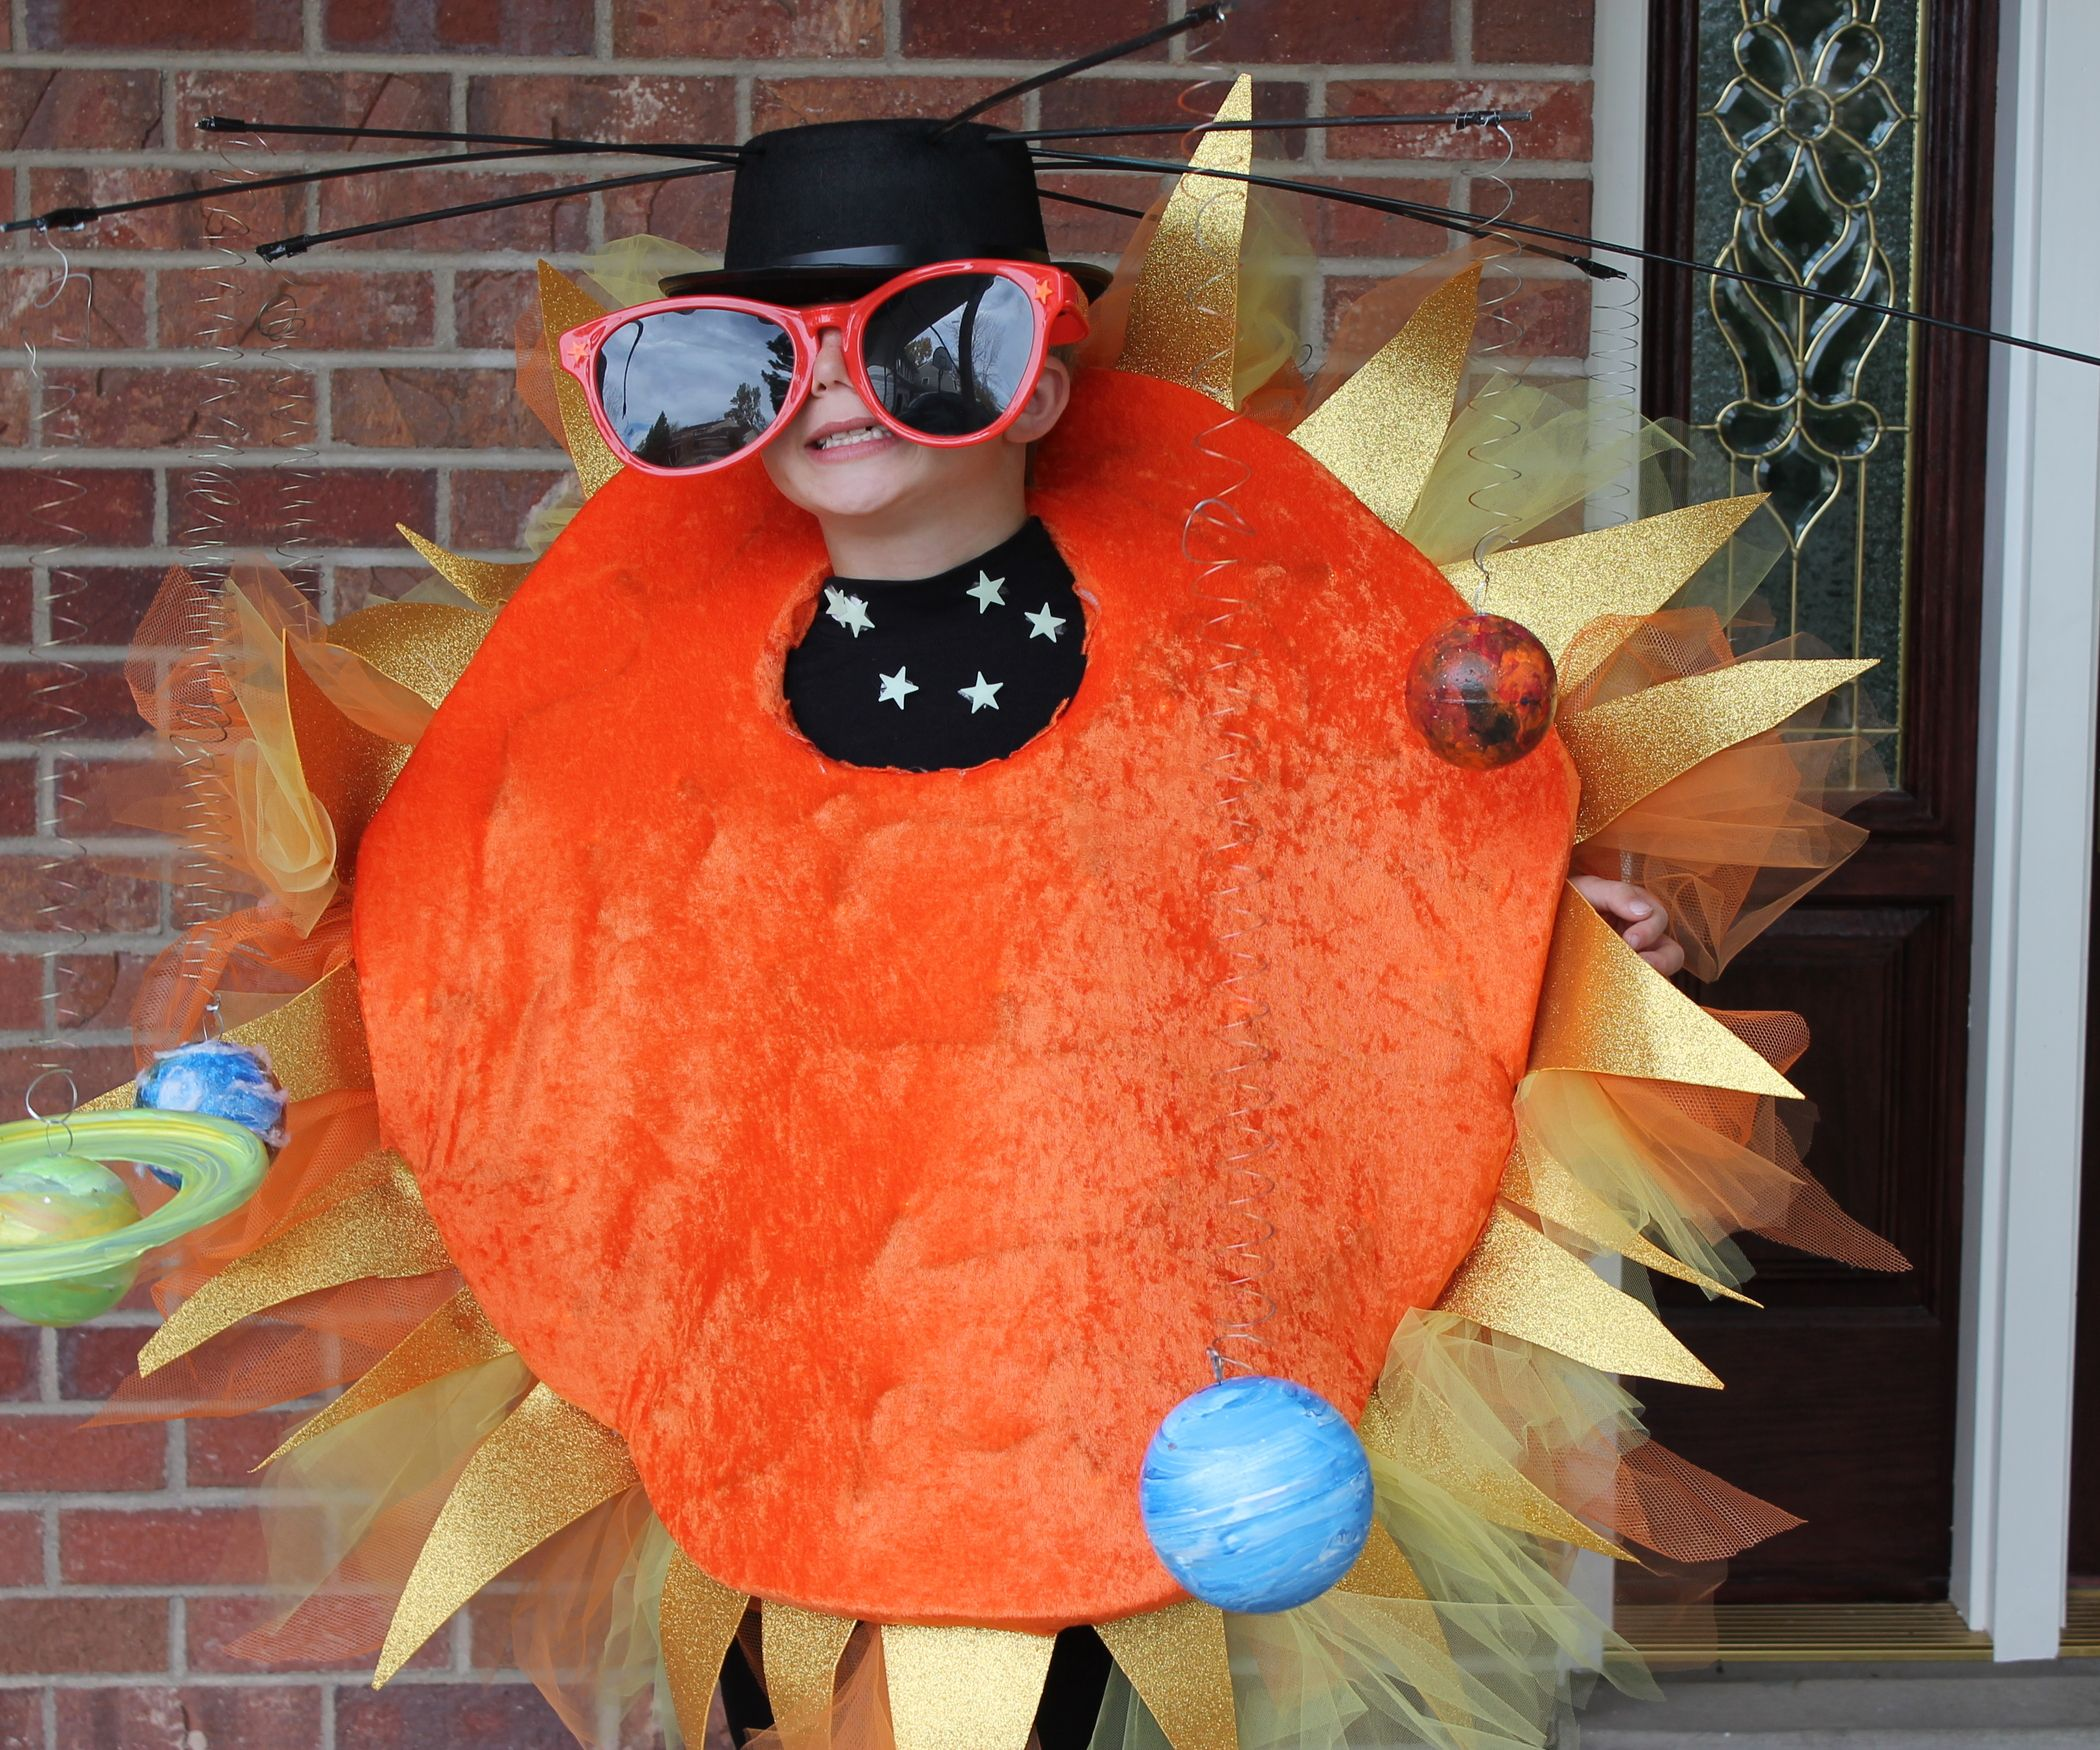 Space Costumes Kid Costume Ideas Halloween Makeup Holidays Favorite Holiday Glue Guns Solar System